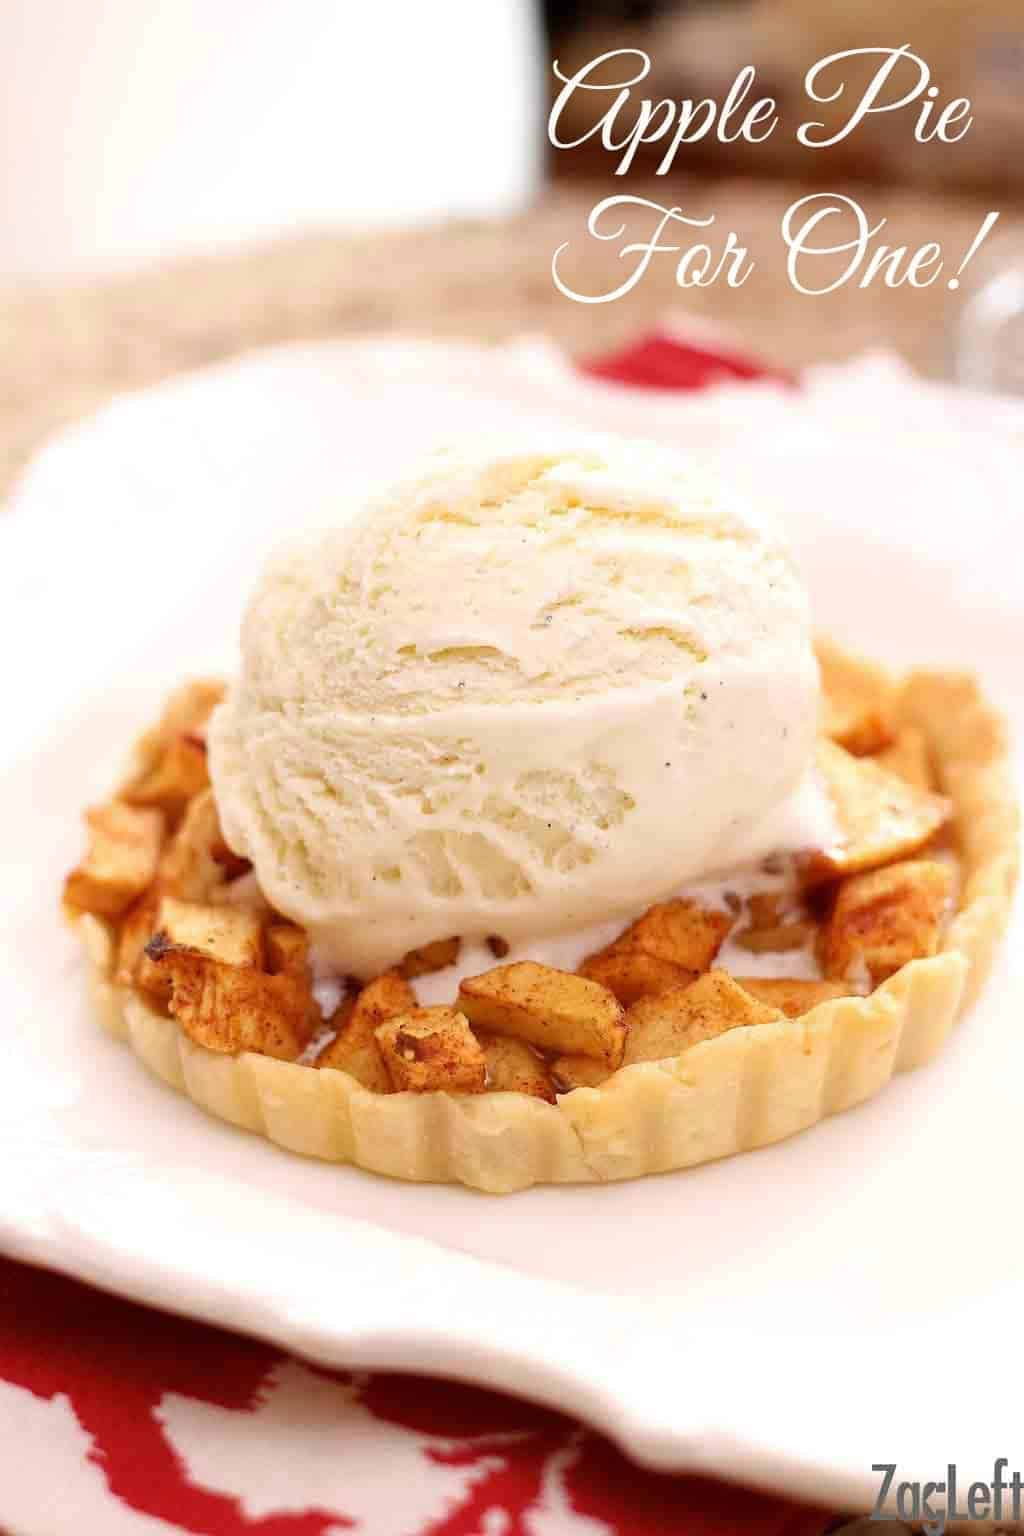 A mini apple pie topped with a scoop of vanilla ice cream